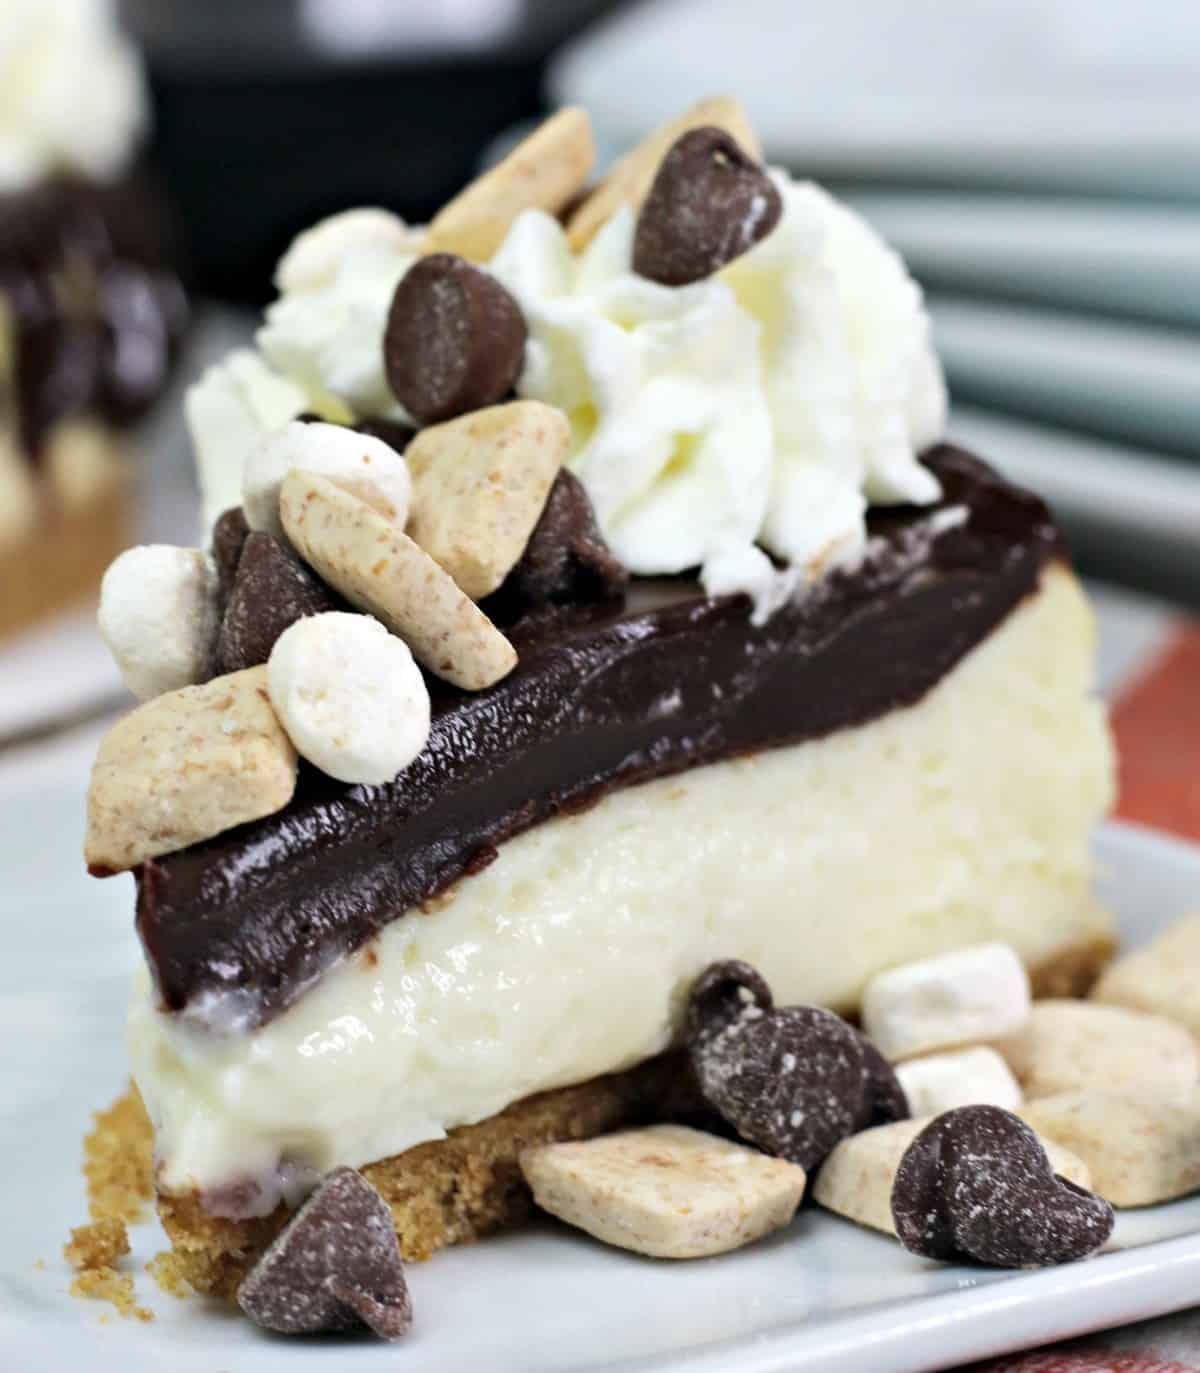 Instant Pot S'more cheesecake